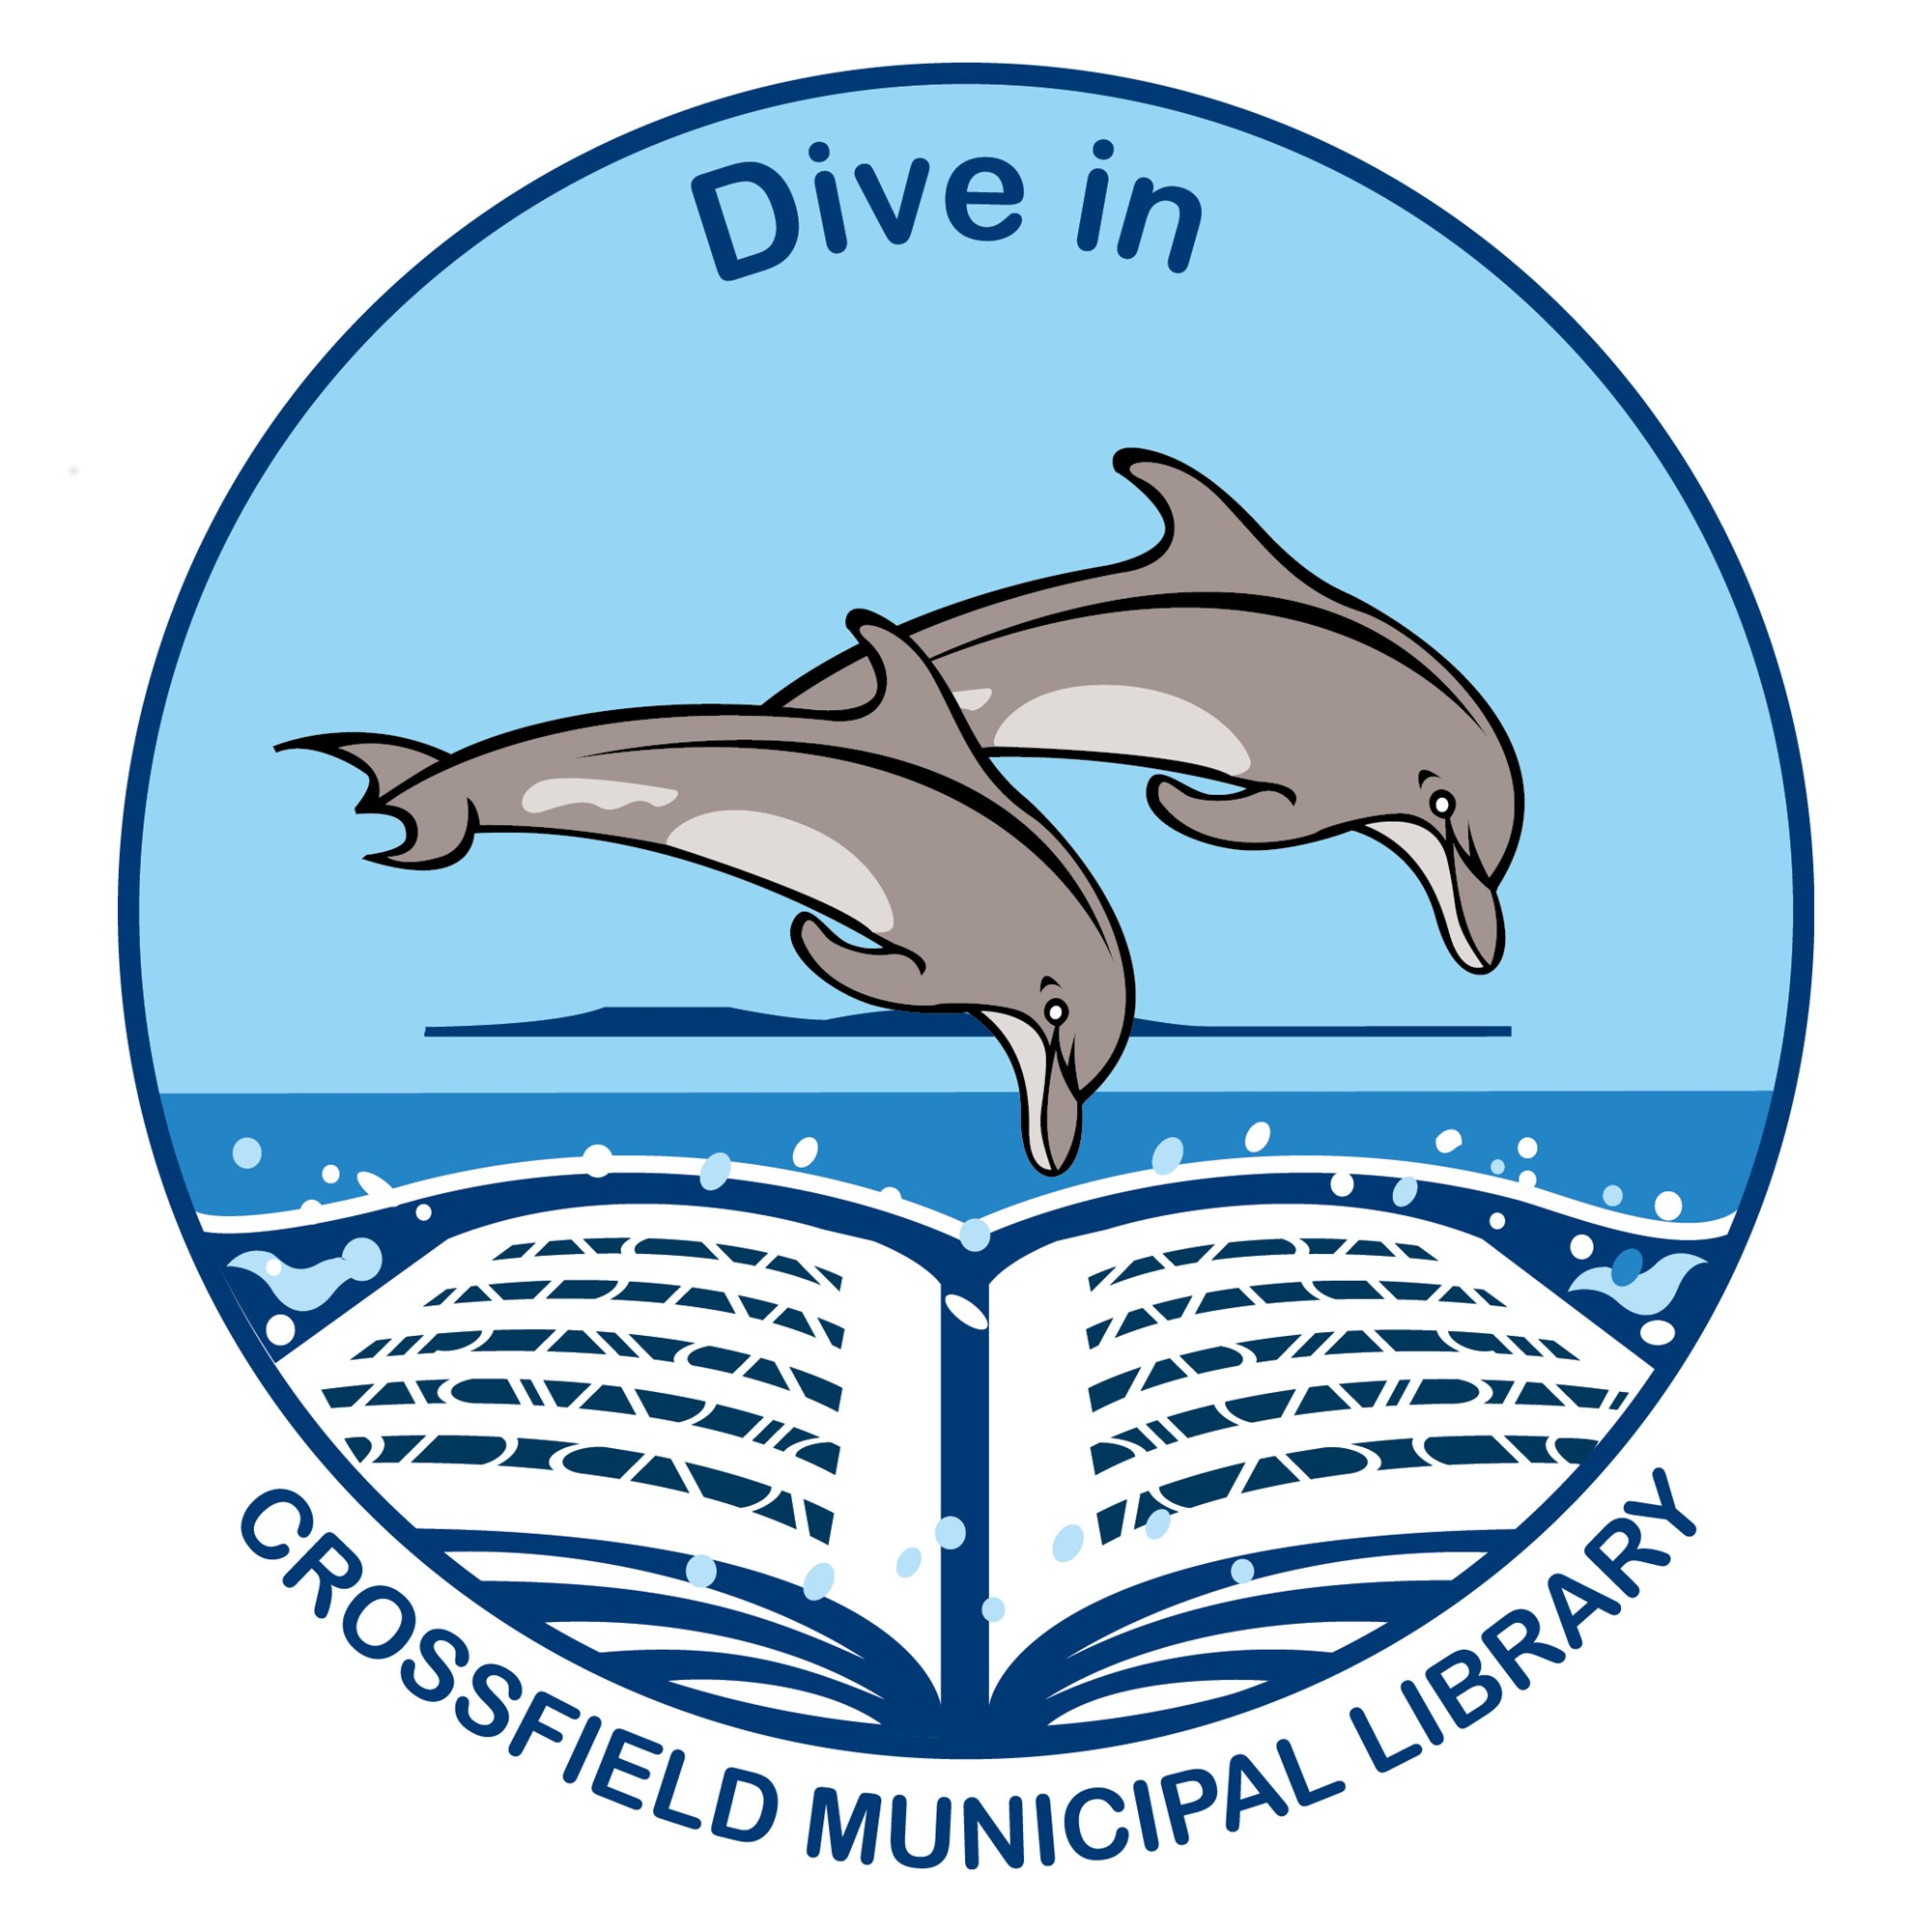 Crossfield Municipal Library